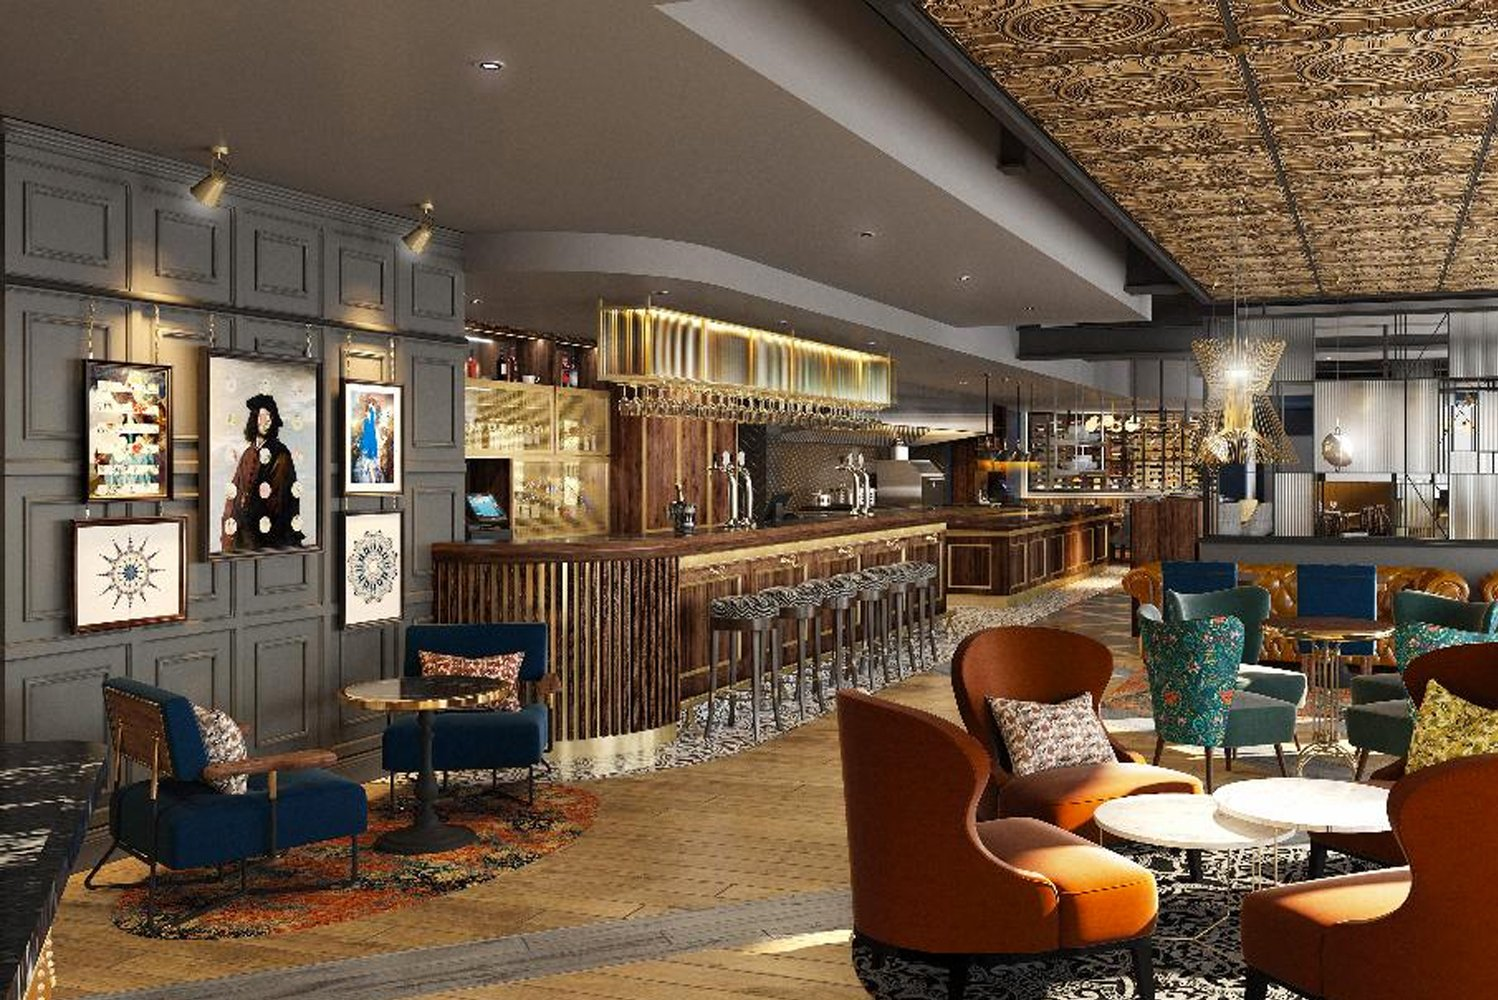 The 75-room new build hotel was designed by Franklin Ellis Architects.